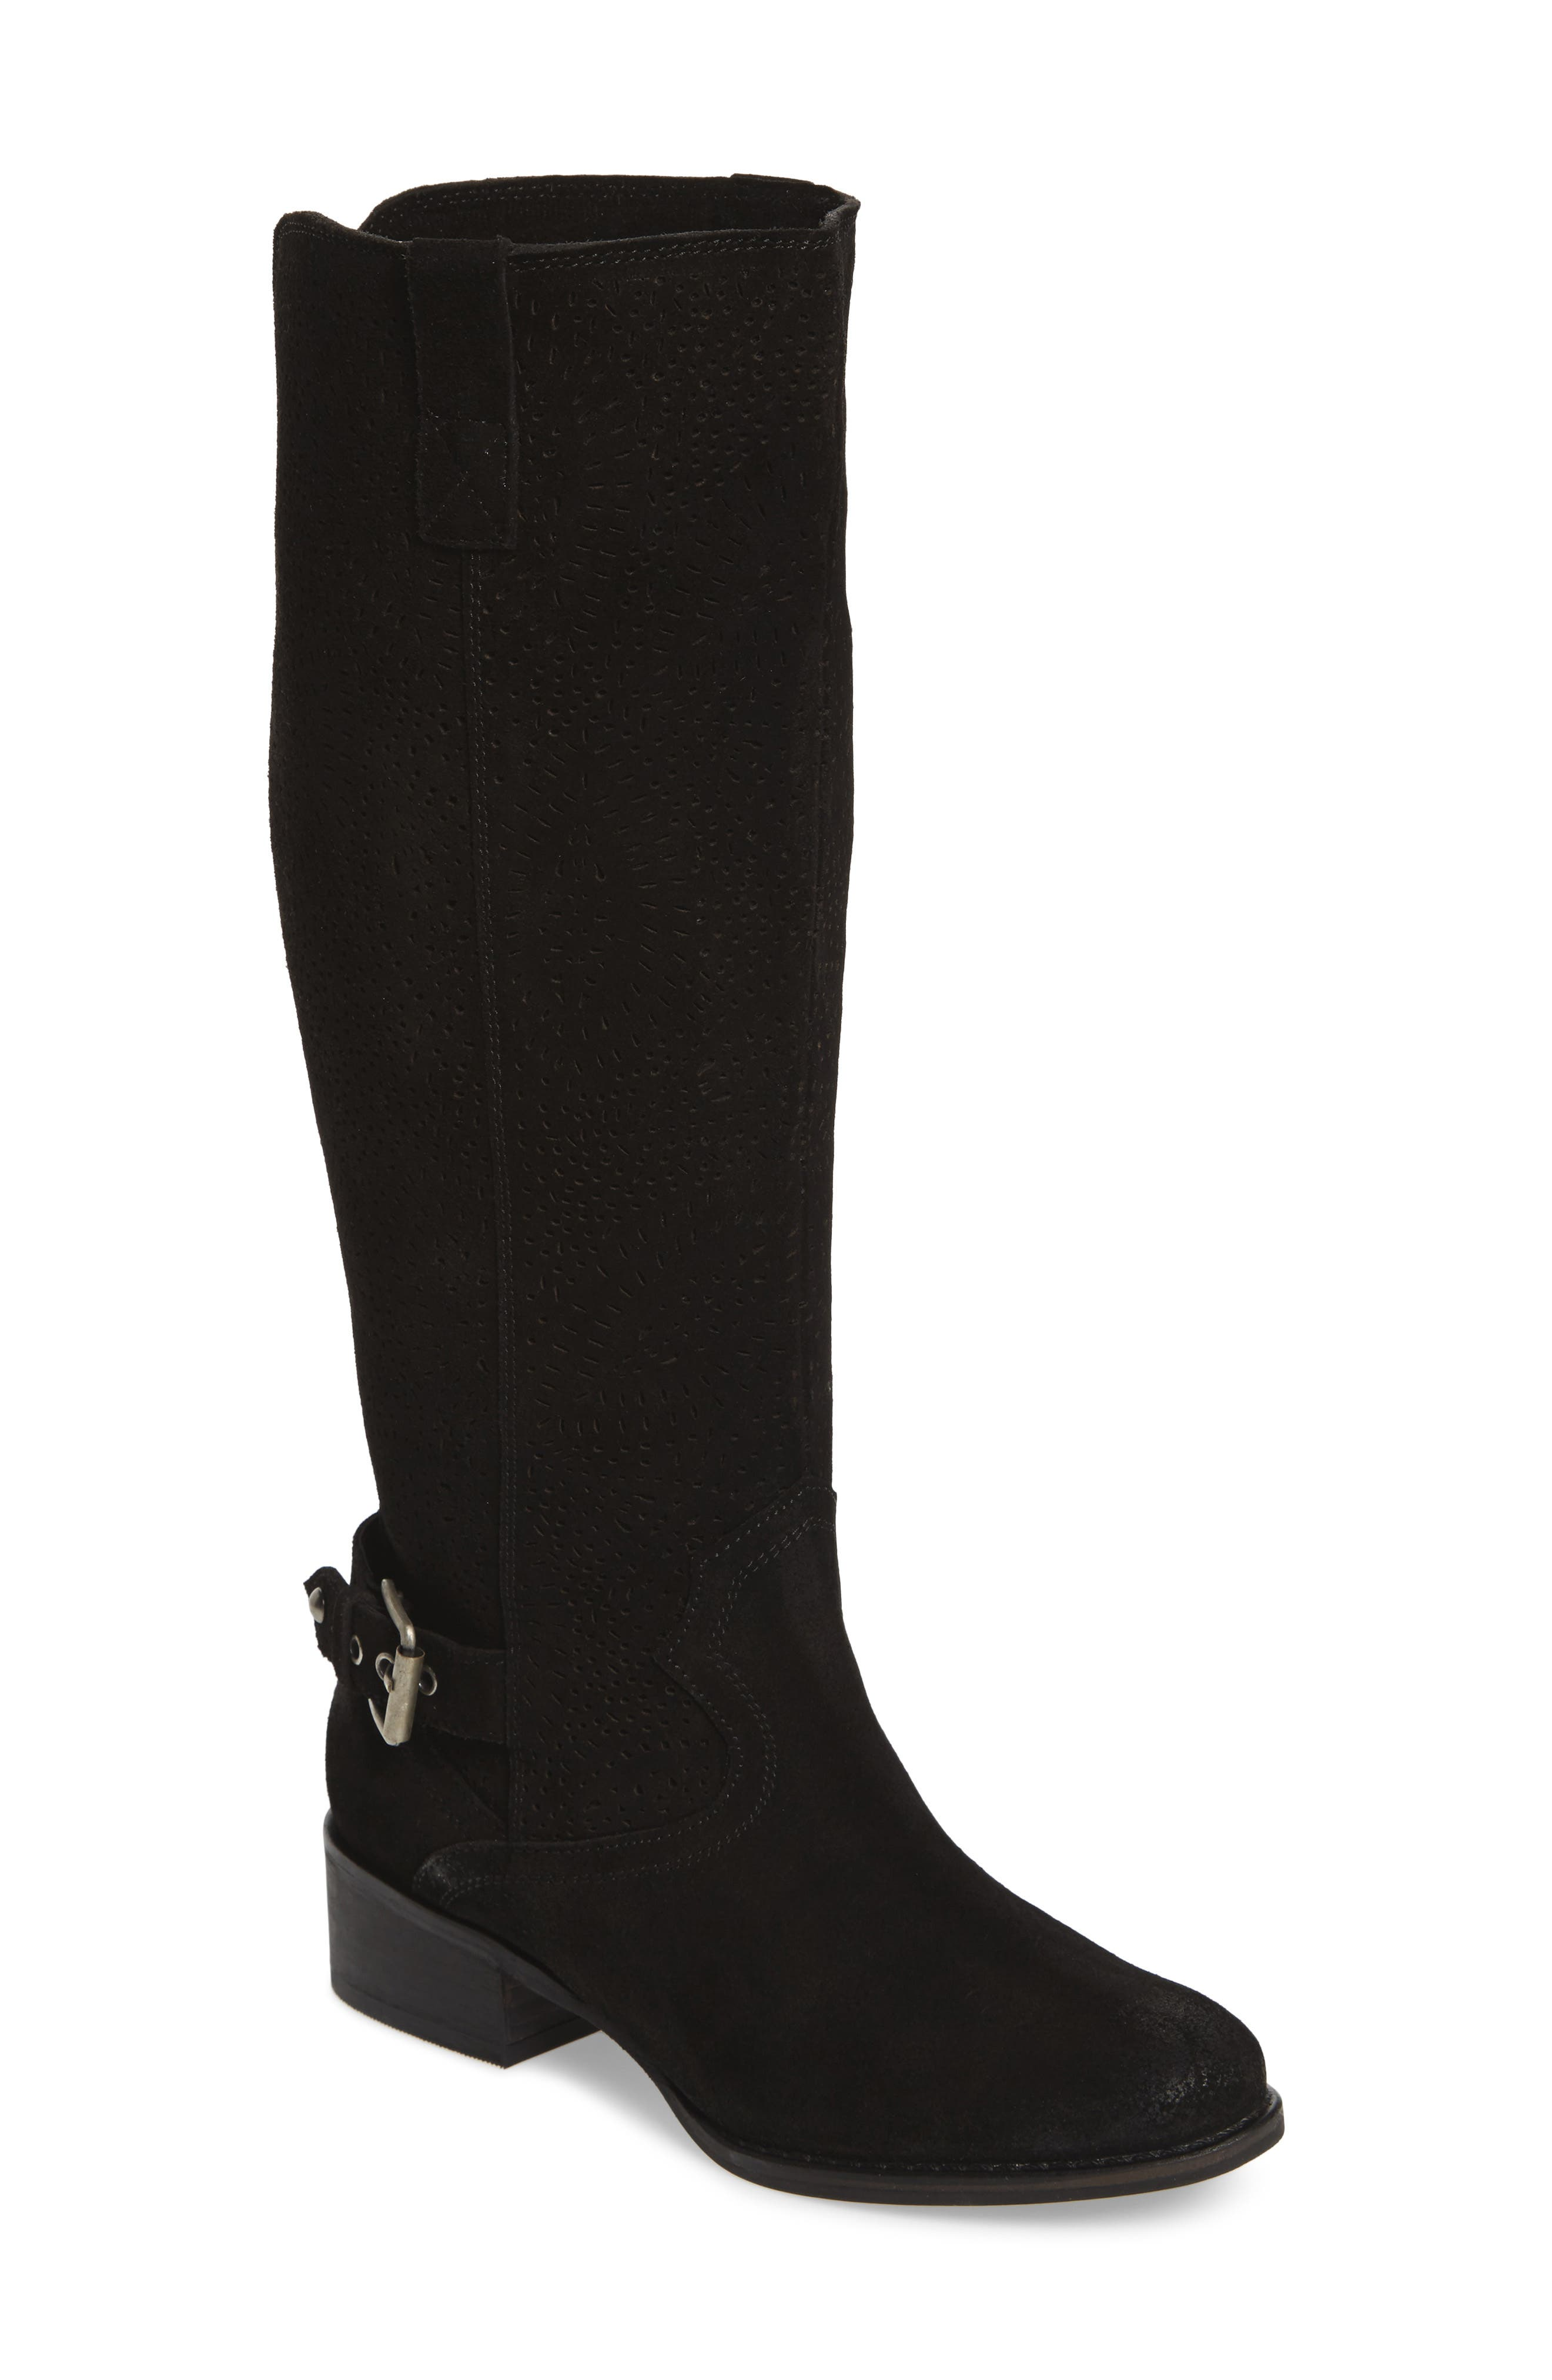 Ziba Tall Boot,                             Main thumbnail 1, color,                             Black Suede